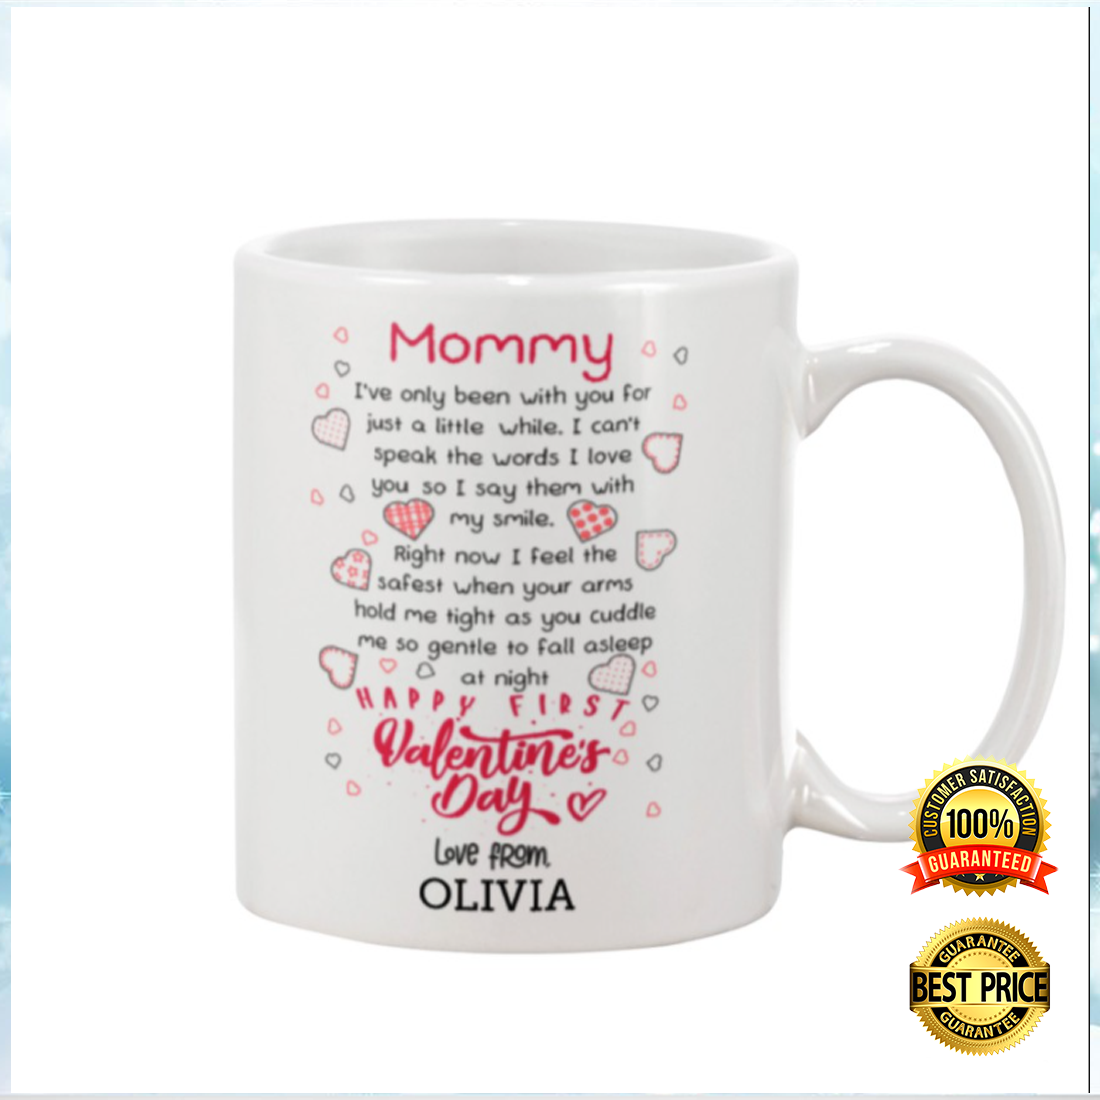 PERSONALIZED MOMMY HAPPY FIRST VALENTINE'S DAY MUG 5